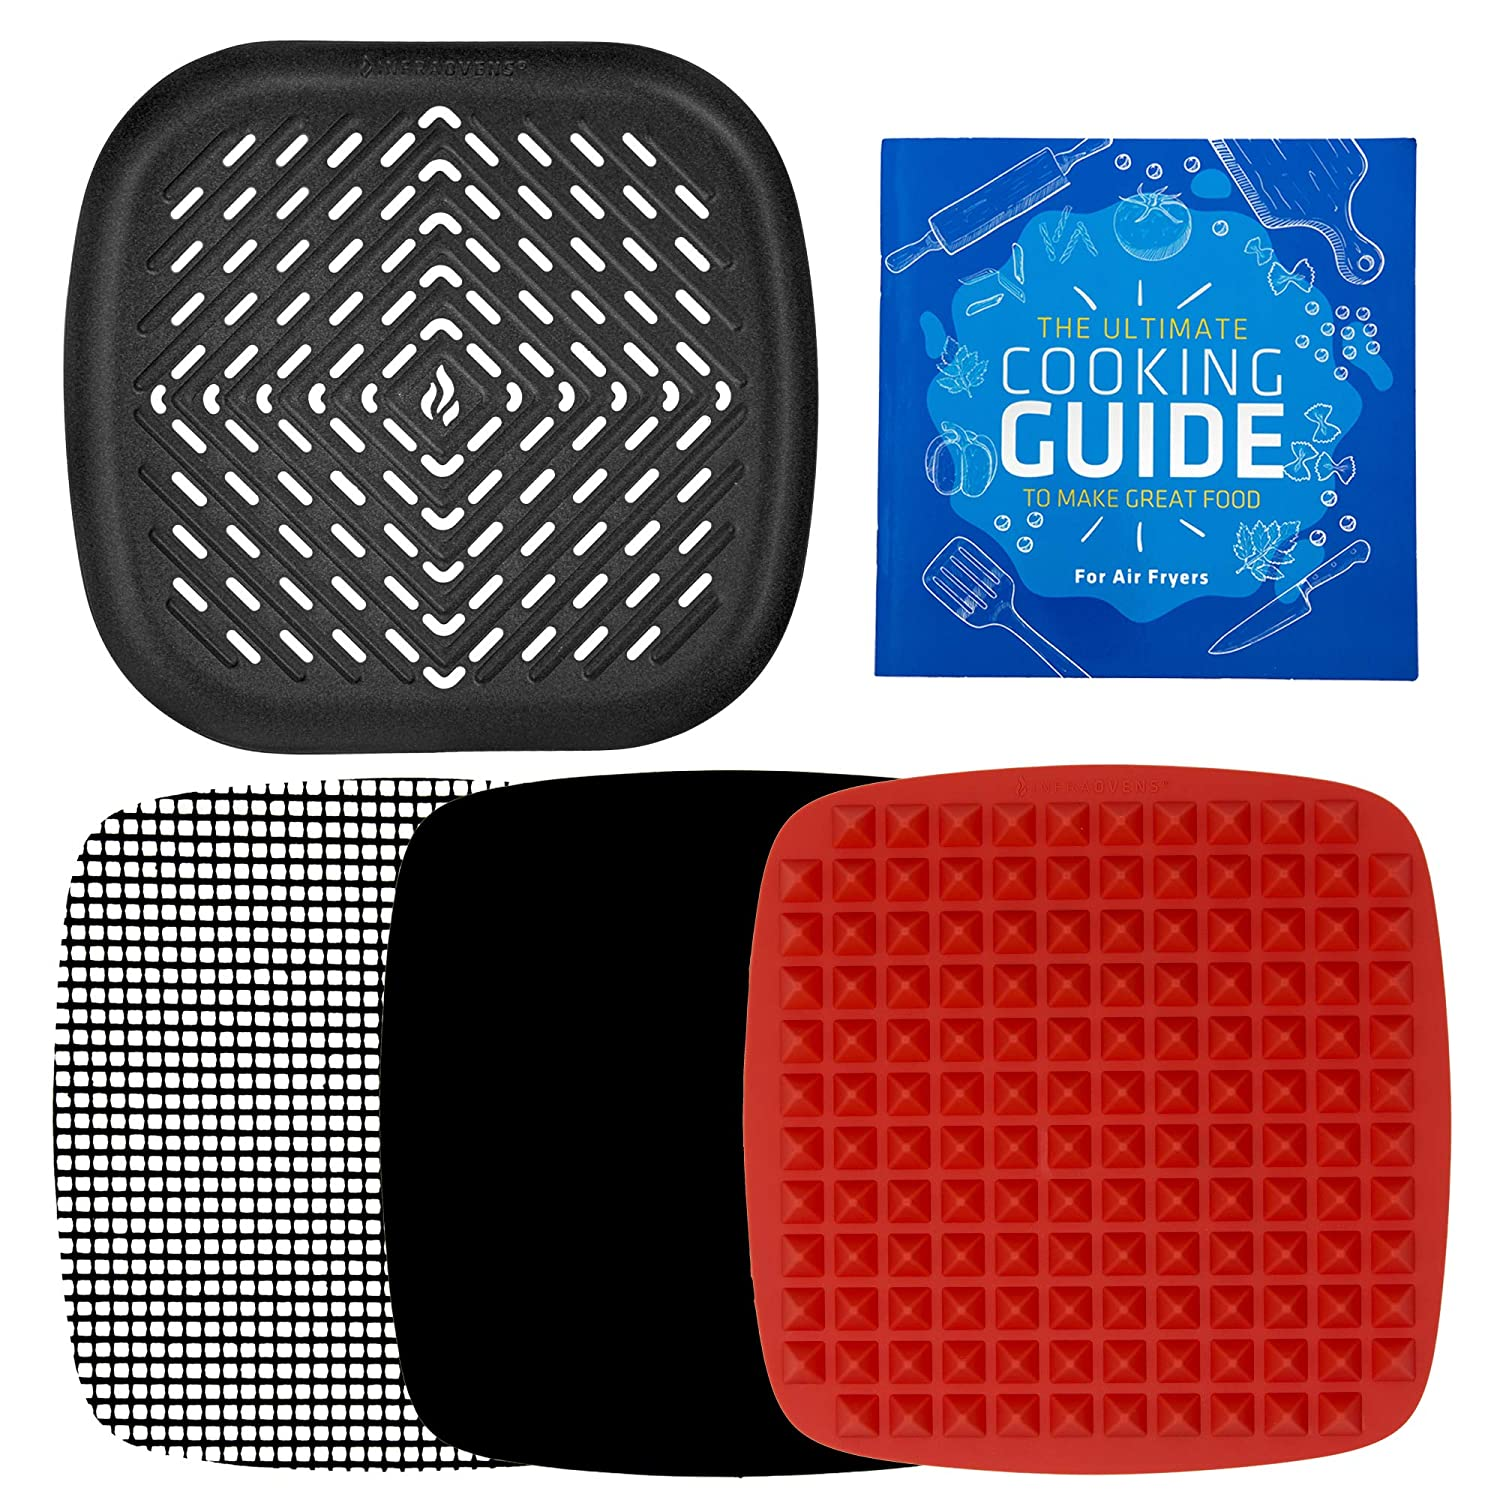 Air Fryer Grill Pan Bundle with Accessories Compatible with Philips, NuWave Brio, Chefman, Power AirFryer, Secura, Black+Decker, Emerald, Elite +More | by Infraovens Set of 4 (Large to X-Large)